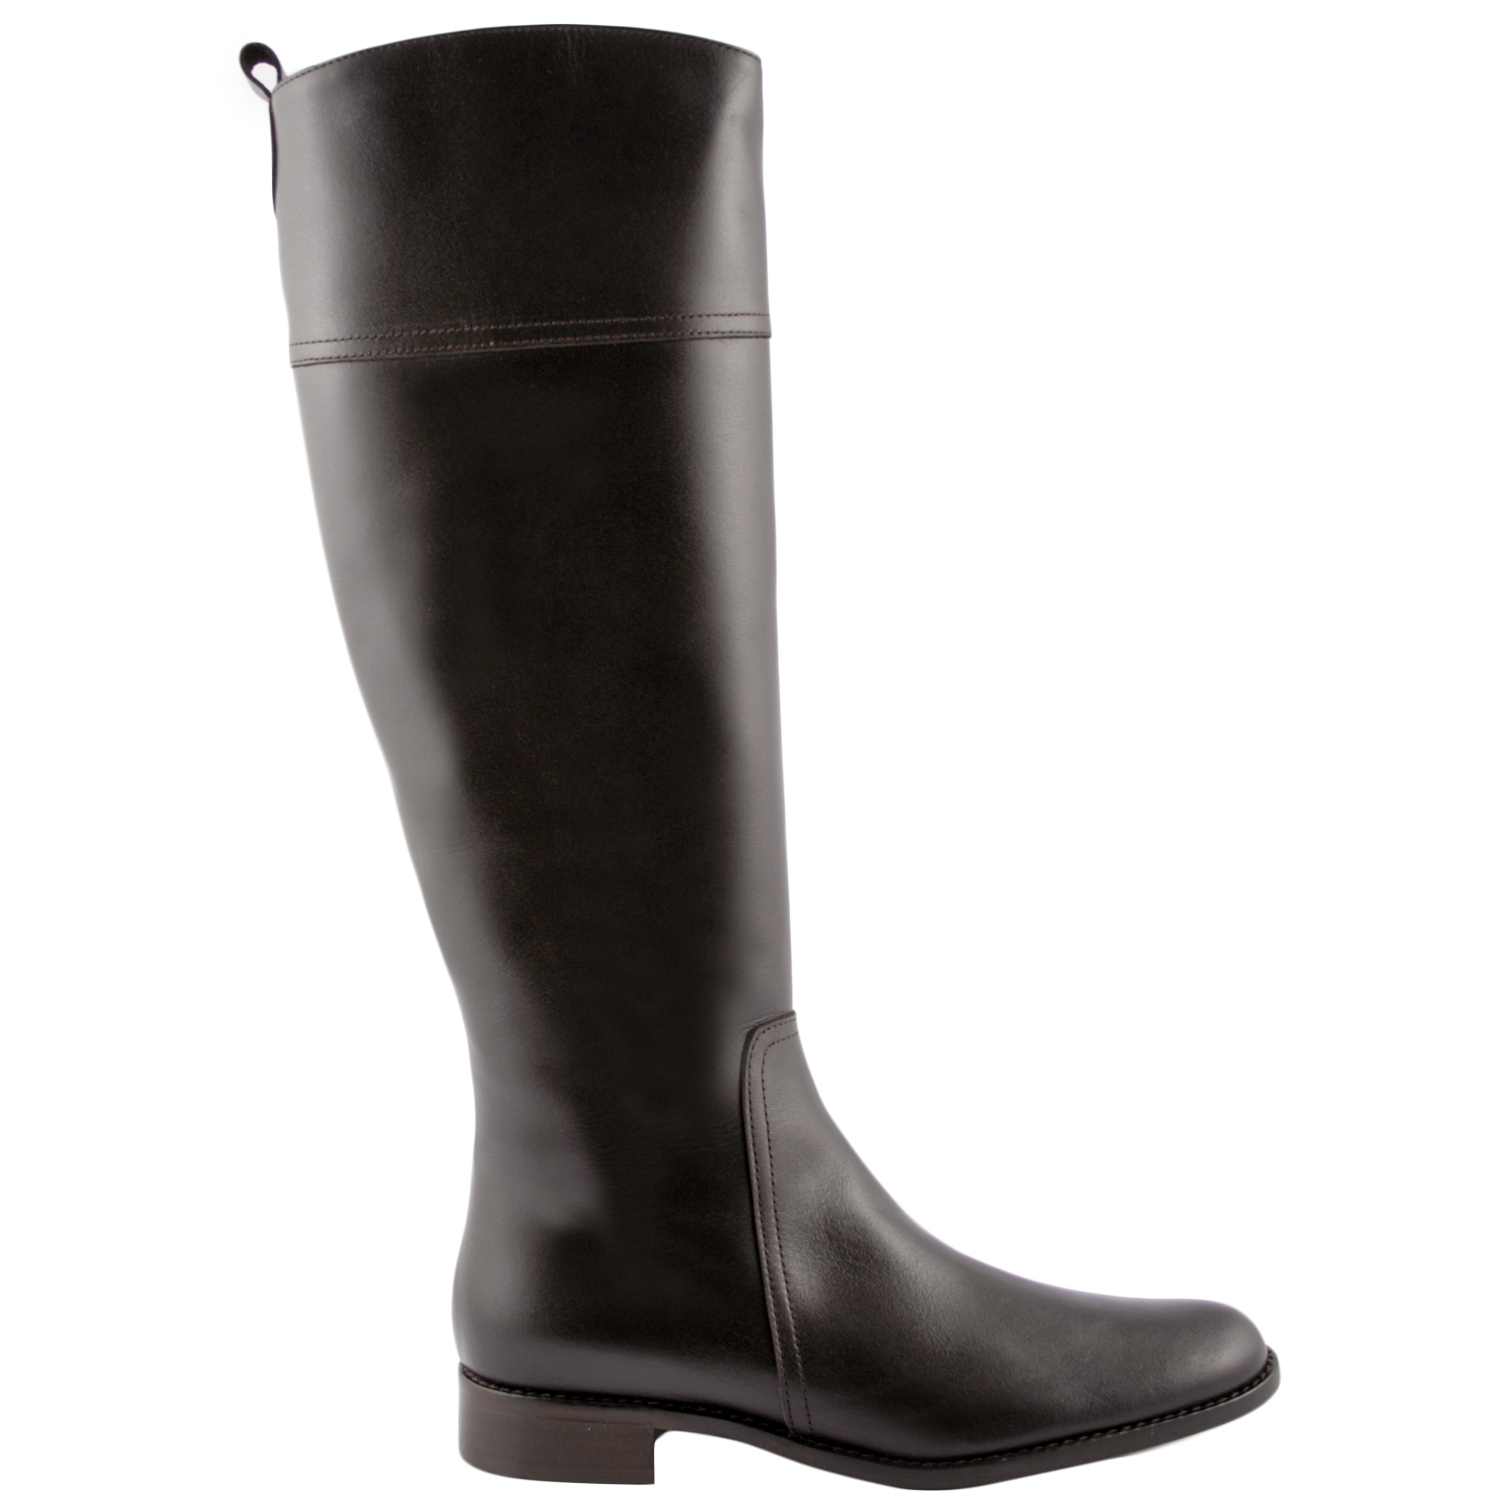 bottes,femme,chelsea,cuir,marron,1. Loading zoom